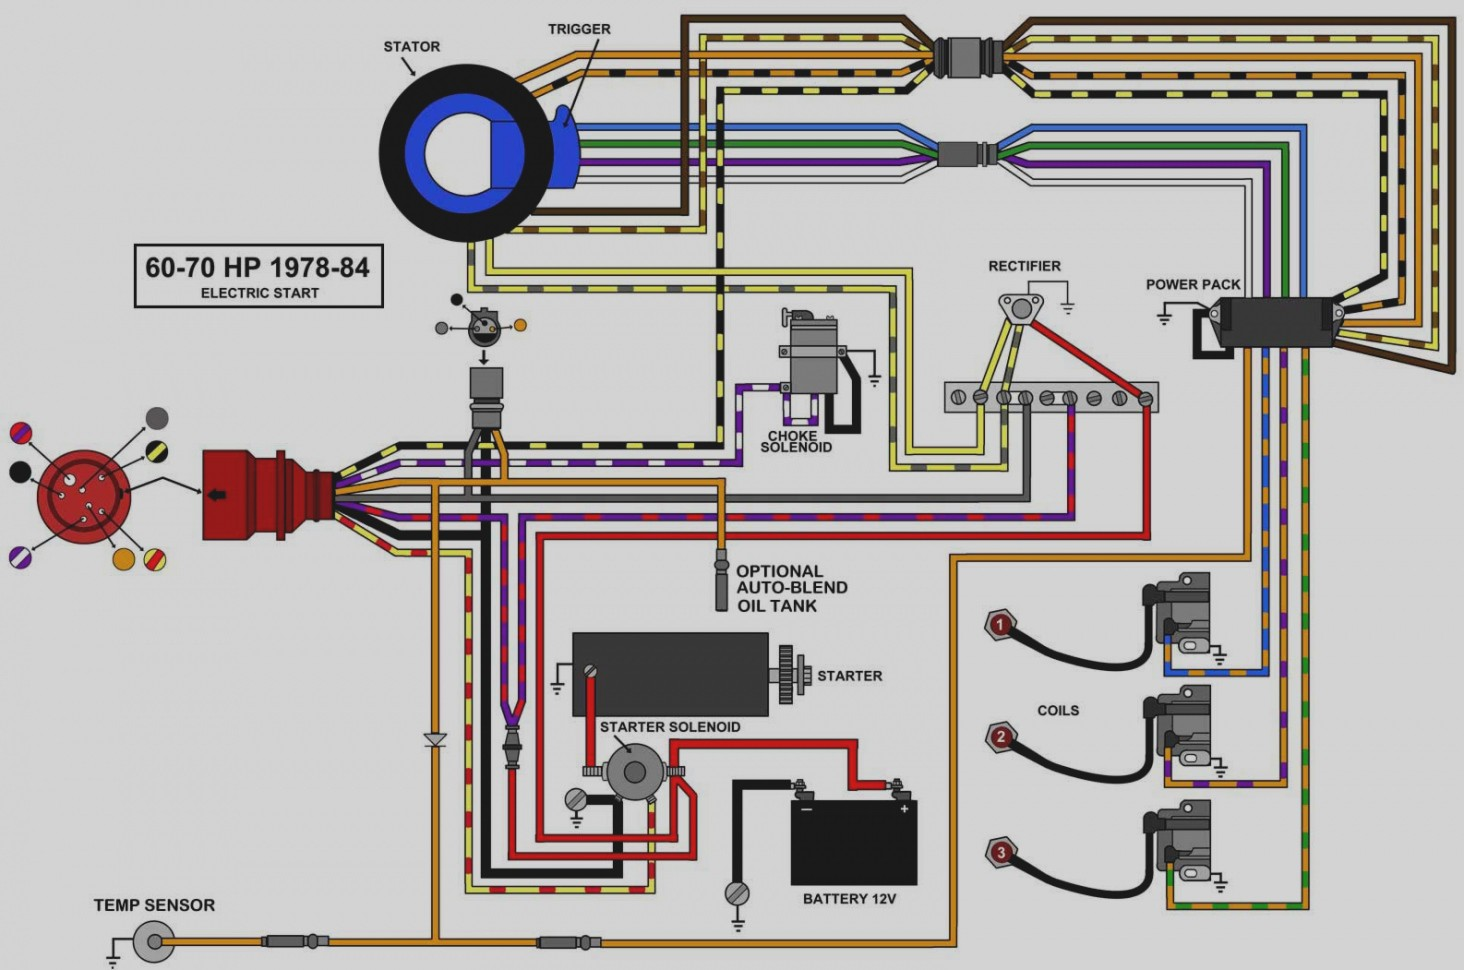 hight resolution of mercury 75 hp wiring diagram wiring diagram data todayjohnson 75 hp wiring diagram wiring diagram b7